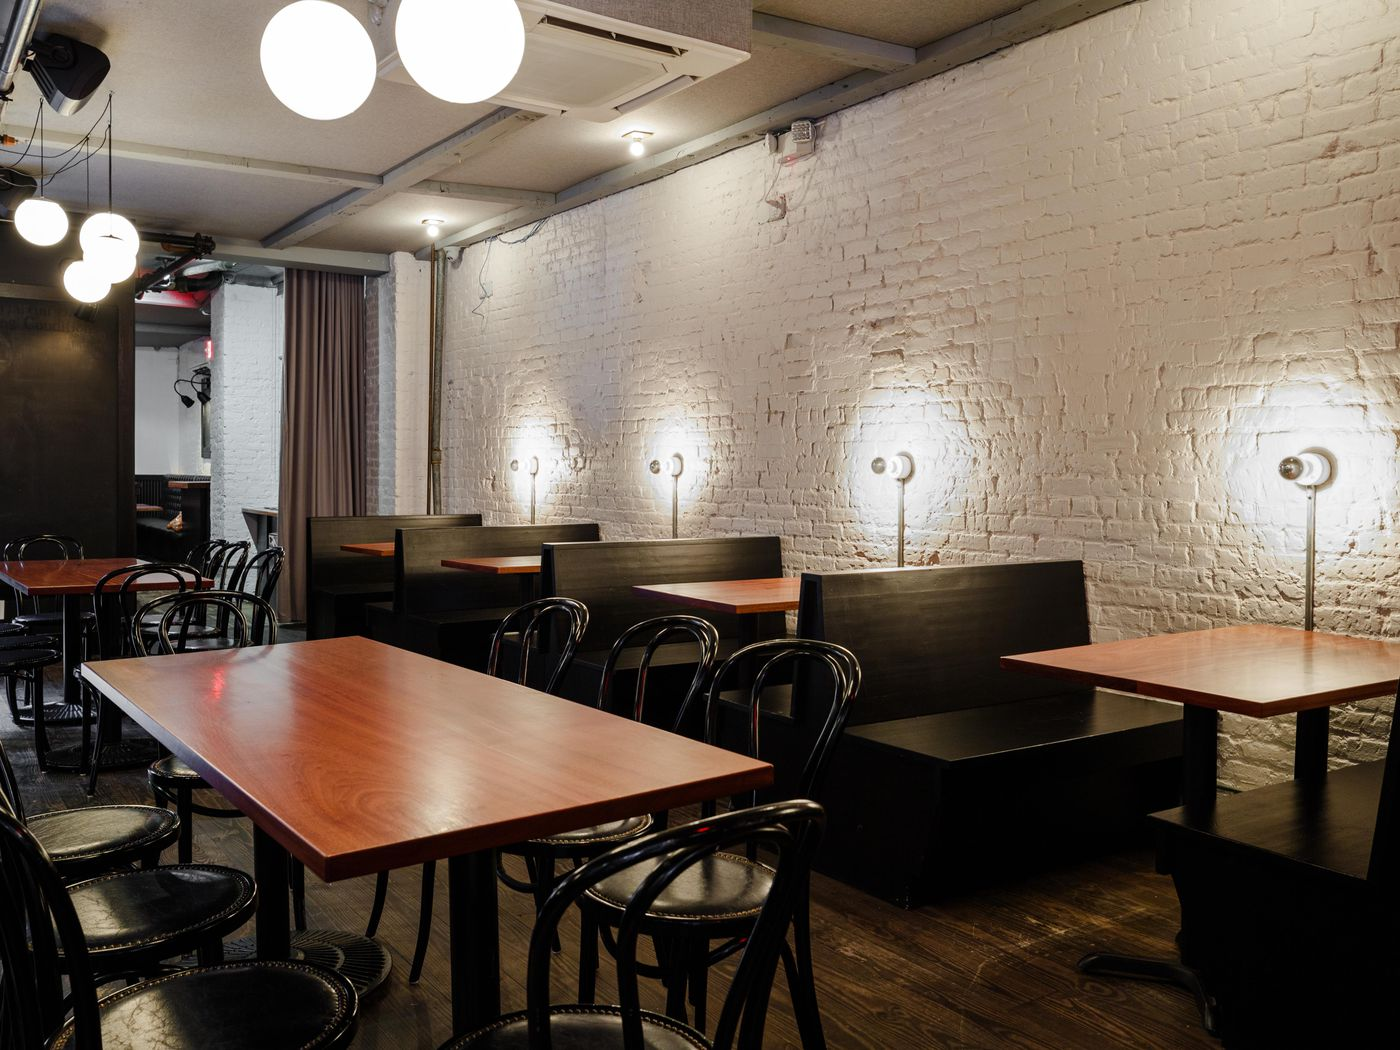 Coronavirus In Nyc Restaurants That Have Closed Permanently Due To The Pandemic Eater Ny